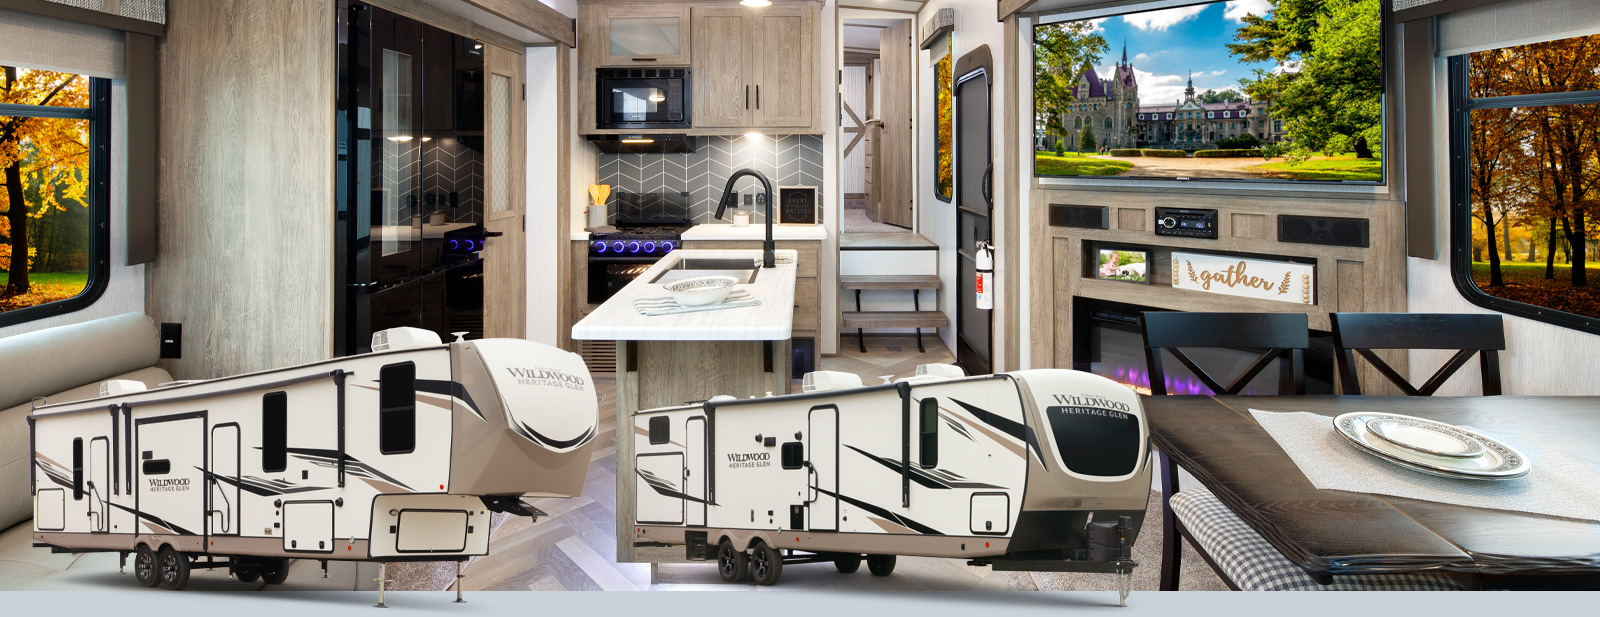 Wildwood Heritage Glen LTZ Fifth Wheels / Travel Trailers by Forest on forest river mb wiring-diagram, forest river manuals, forest river parts, 2006 silverado 2500hd brake system schematics,